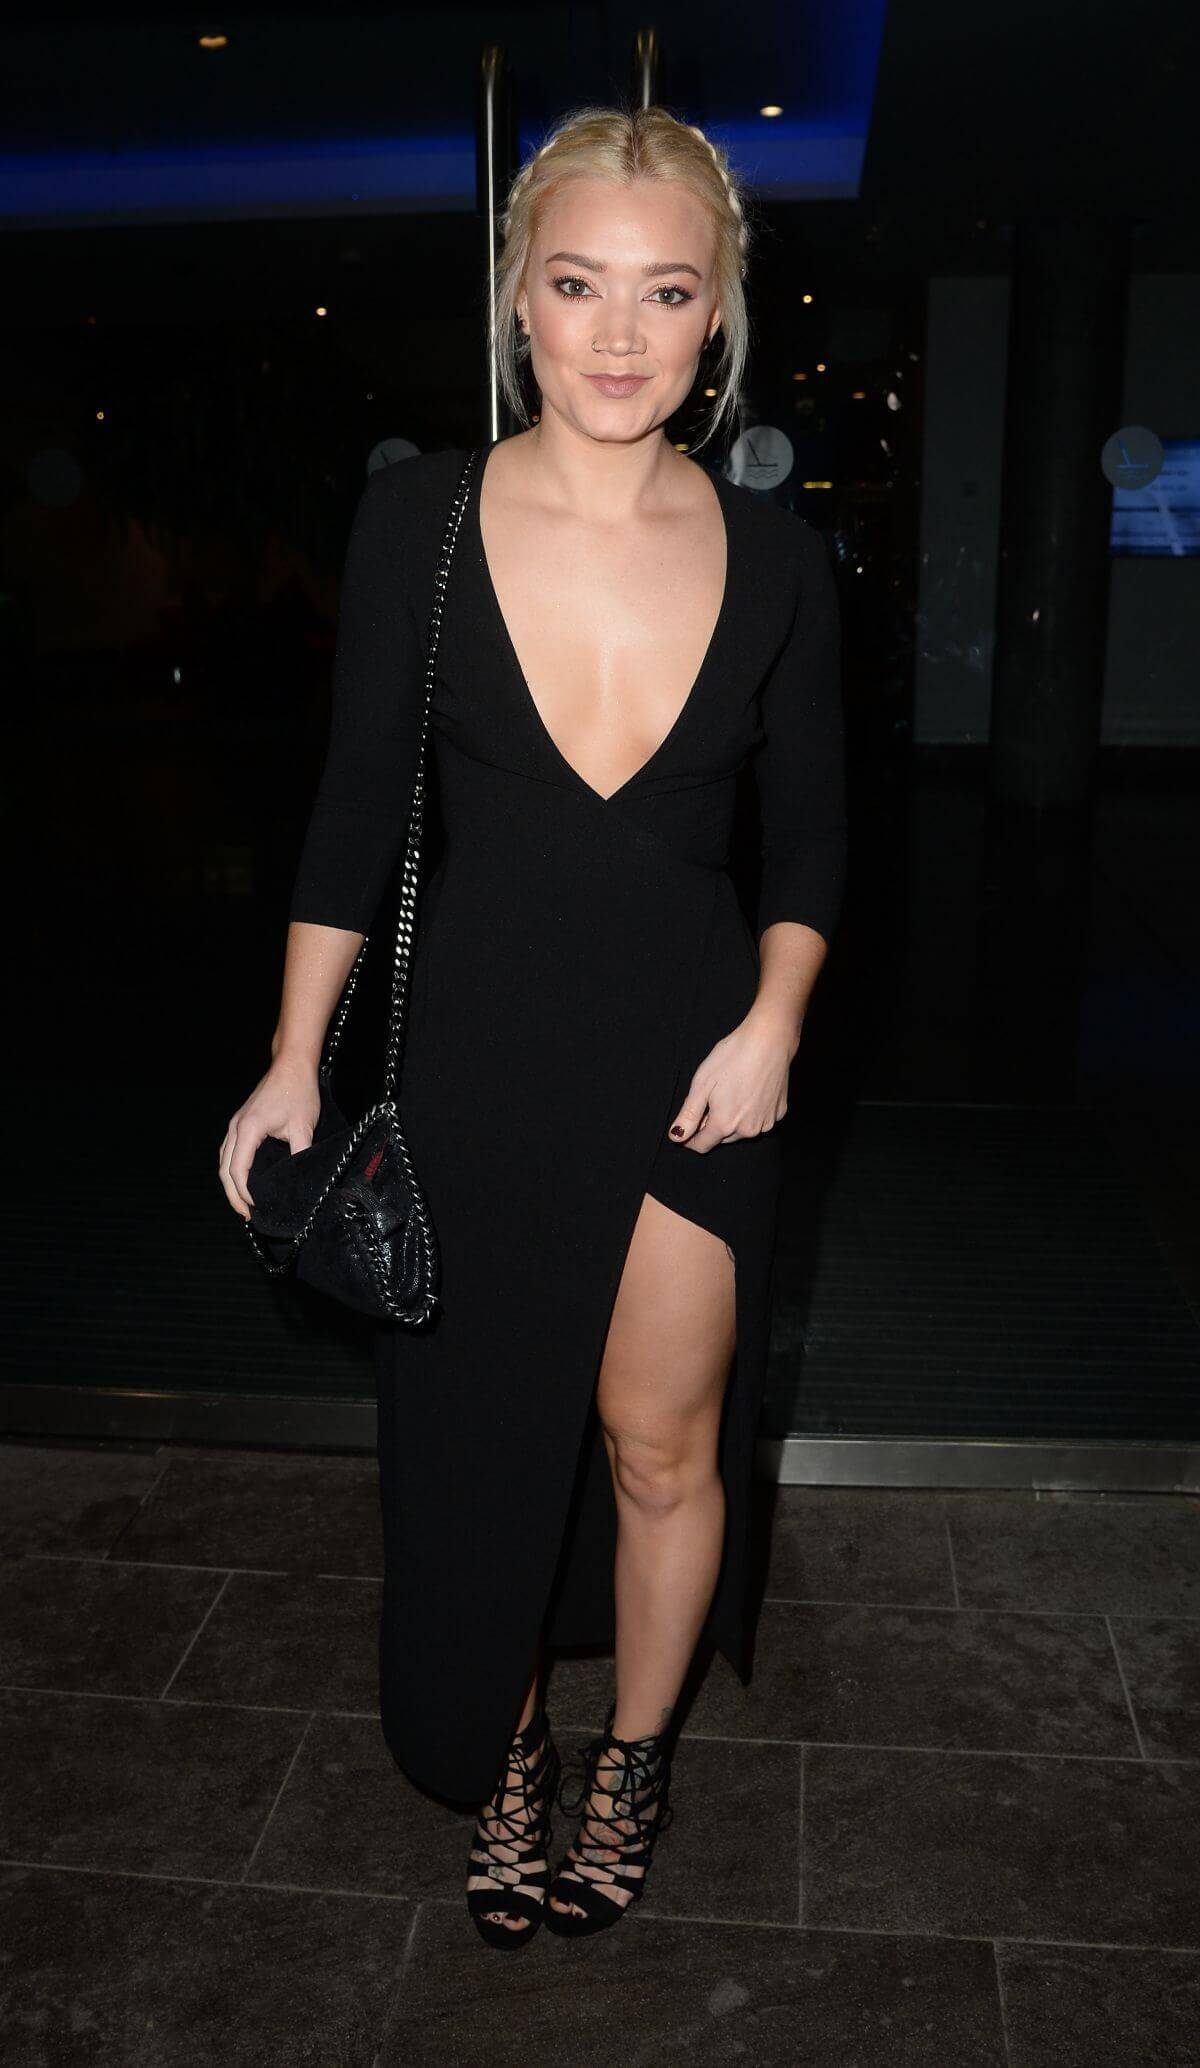 Hollie-Jay Bowes Stills at Lowry Hotel in Manchester